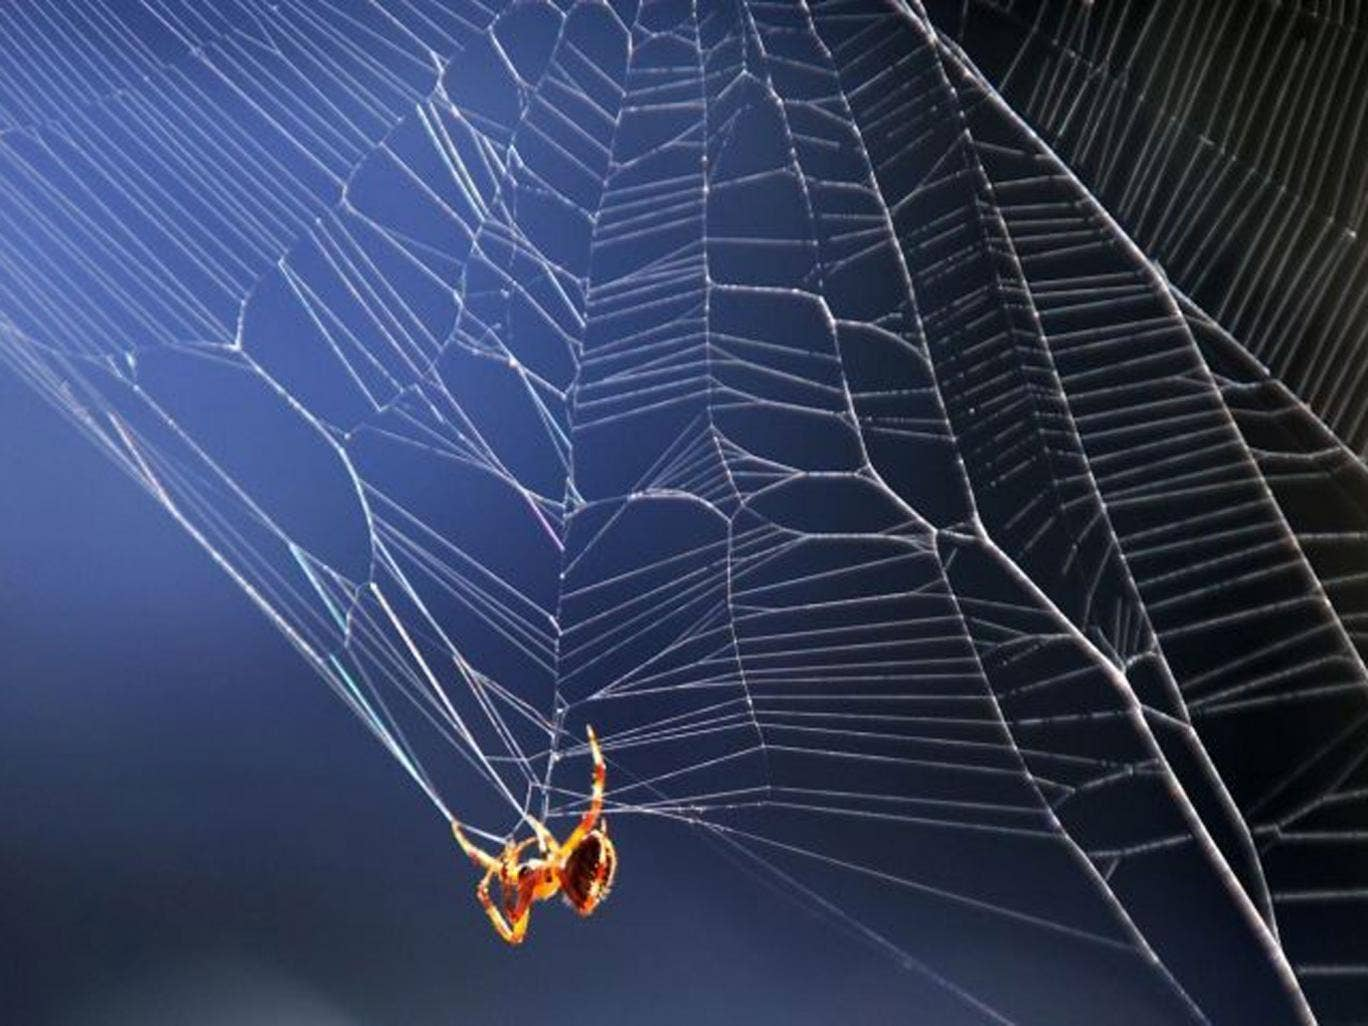 Spiders' webs are covered with an electrically conductive glue, and they filter pollutants as well as catch insects